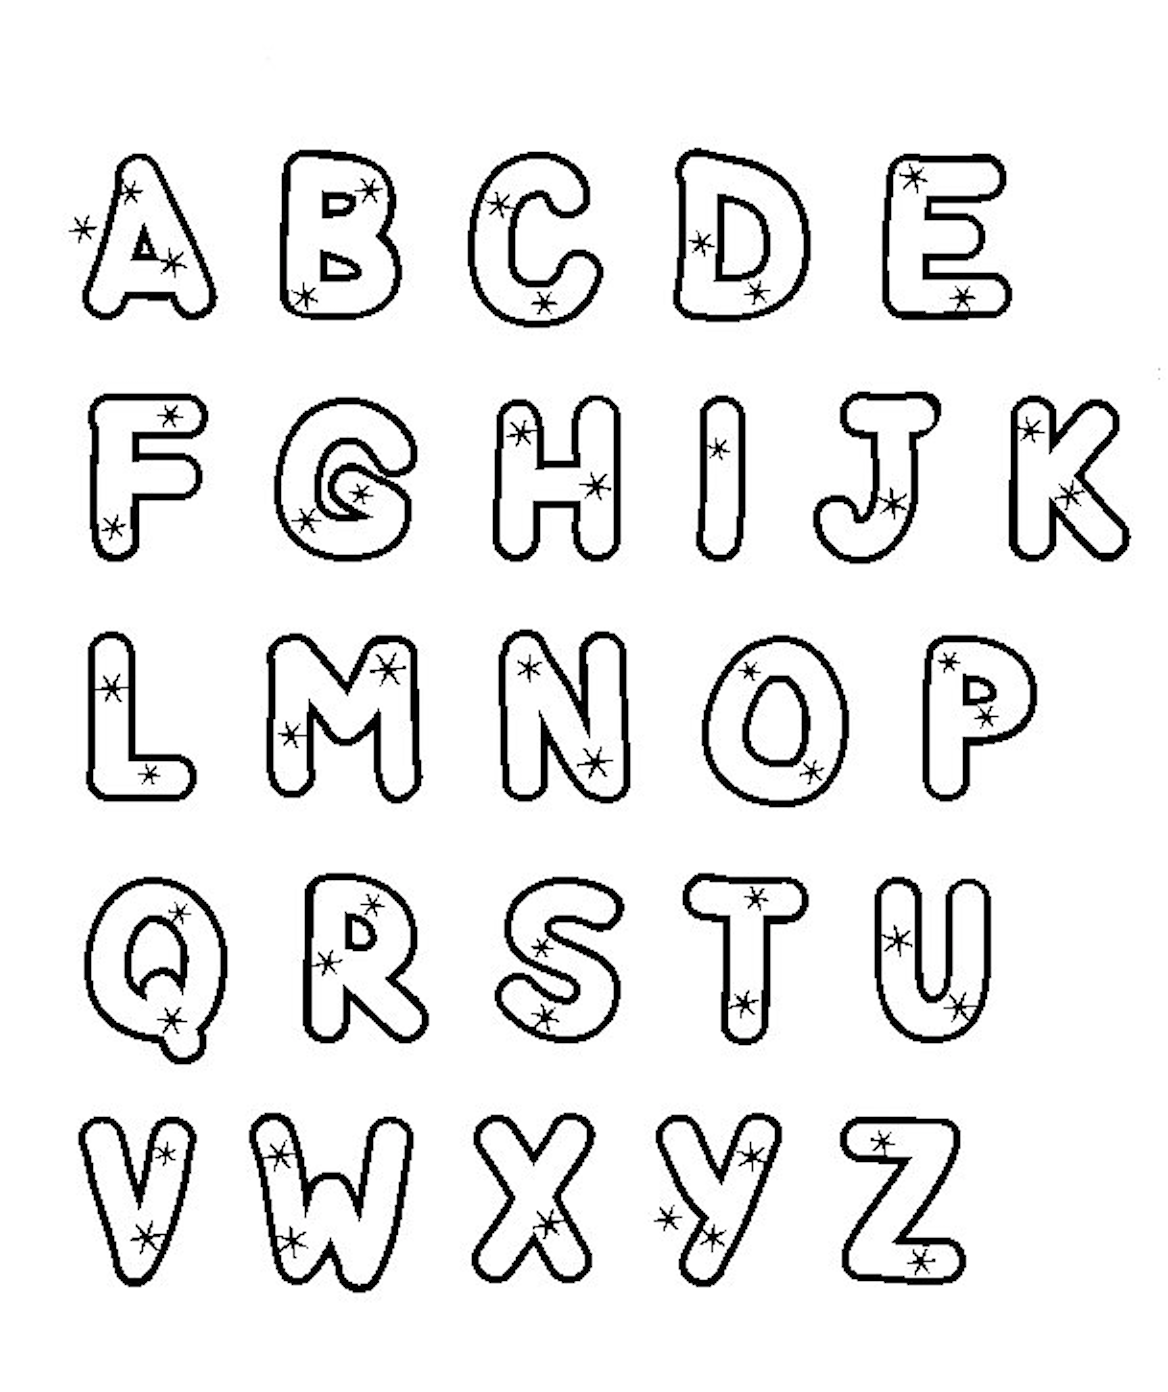 Alphabet Coloring Pages For Kids To Print Color Lettering Alphabet Alphabet Coloring Pages Alphabet Coloring